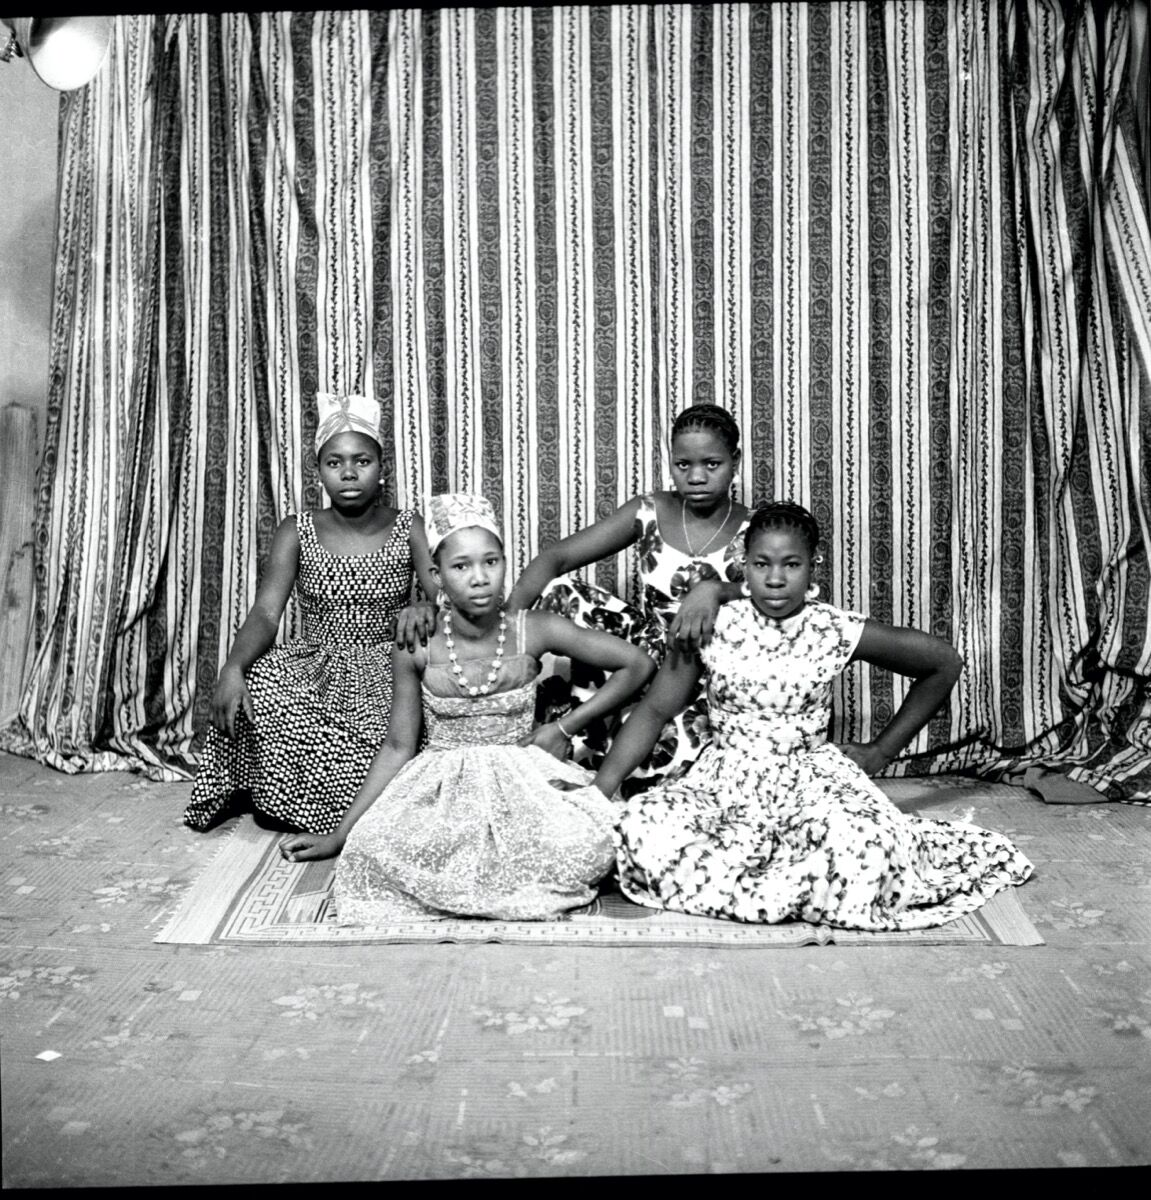 Abdourahmane Sakaly, Jeunes copines, May 1962, 1962. Courtesy of the artist and Black Shade Projects.